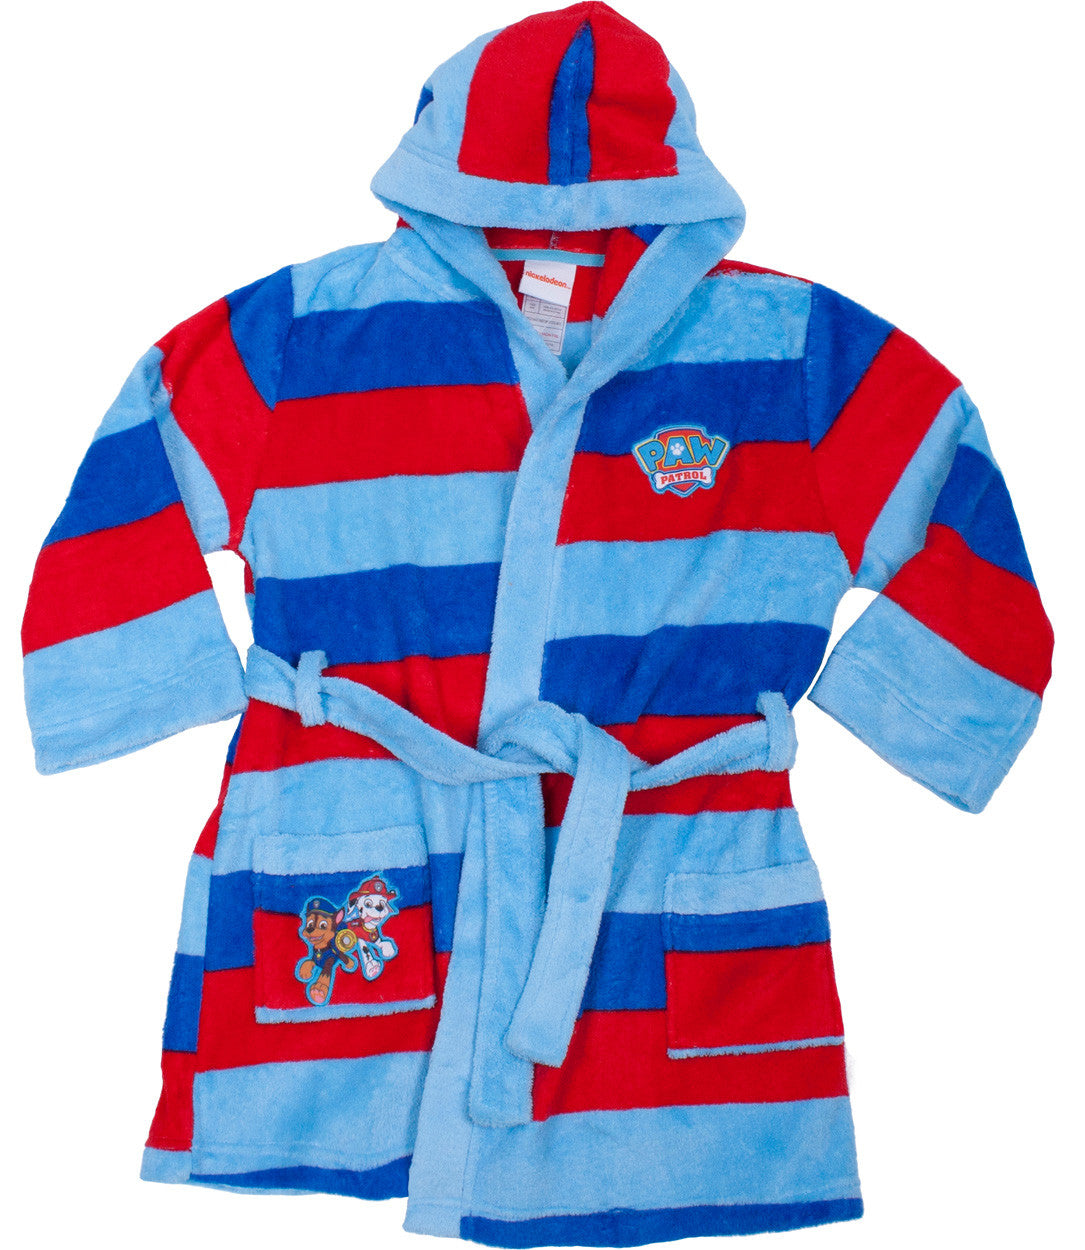 Paw Patrol Chase & Marshall Robe - Toddler - nickelodeonstore.co.uk